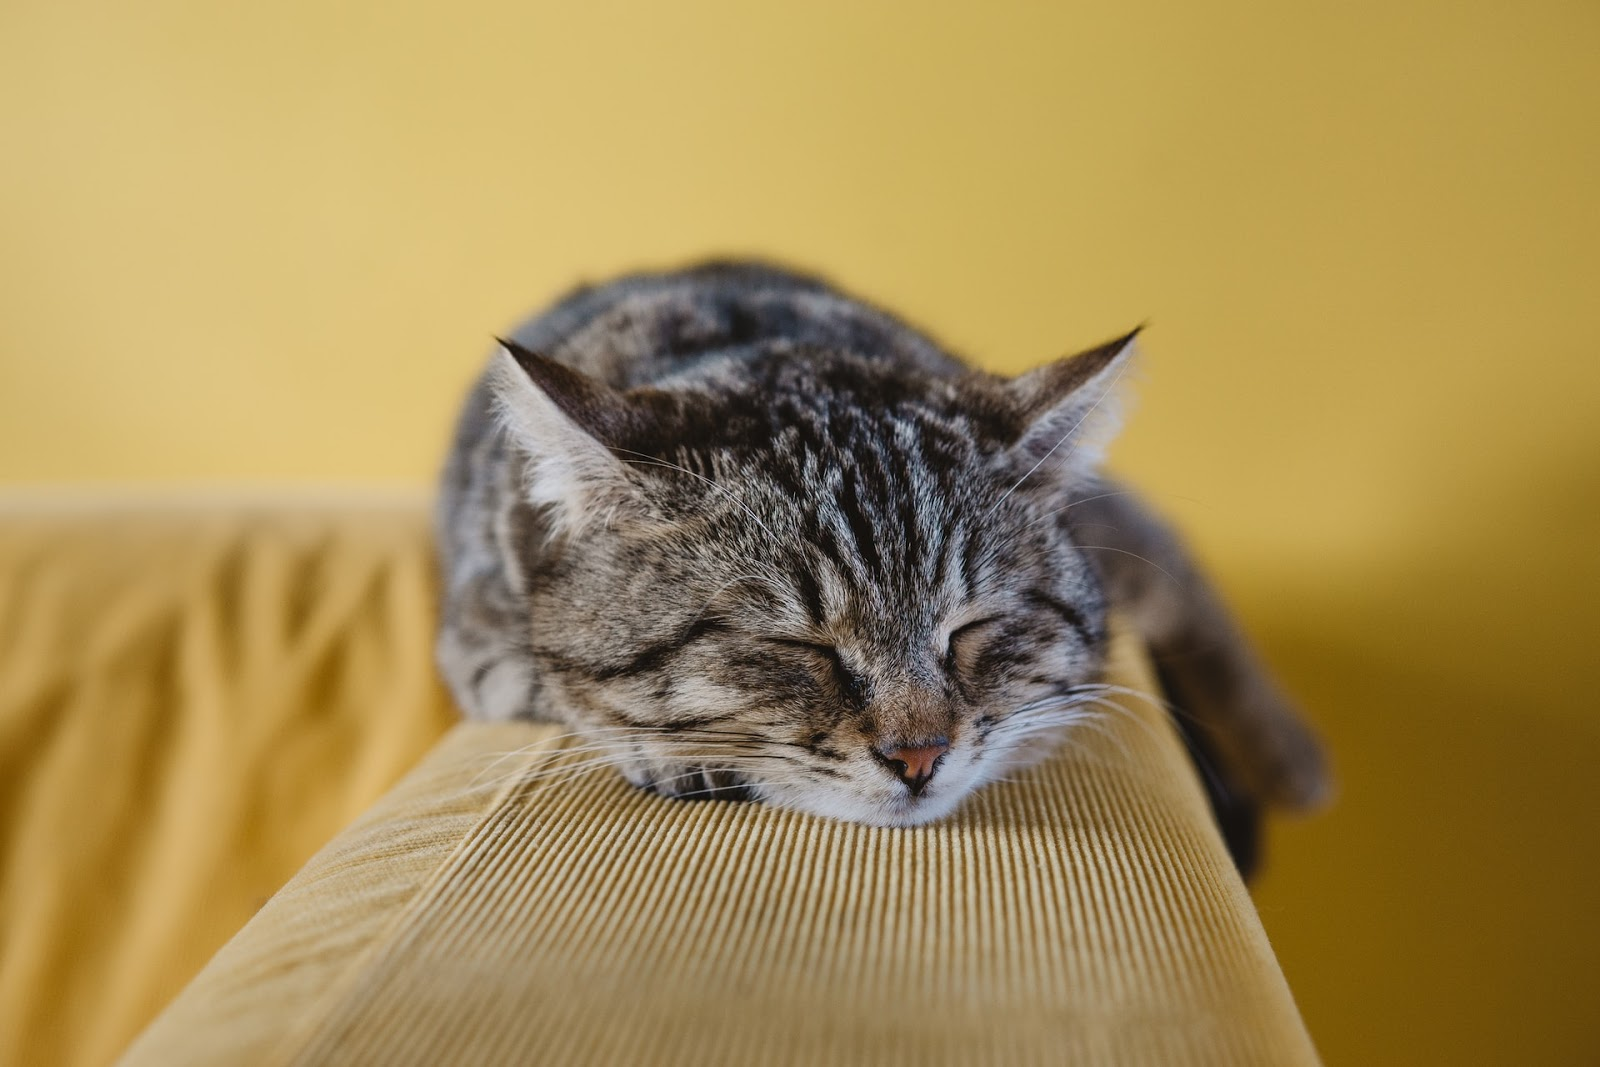 A tabby cat is cozily sleeping on the arm of a couch